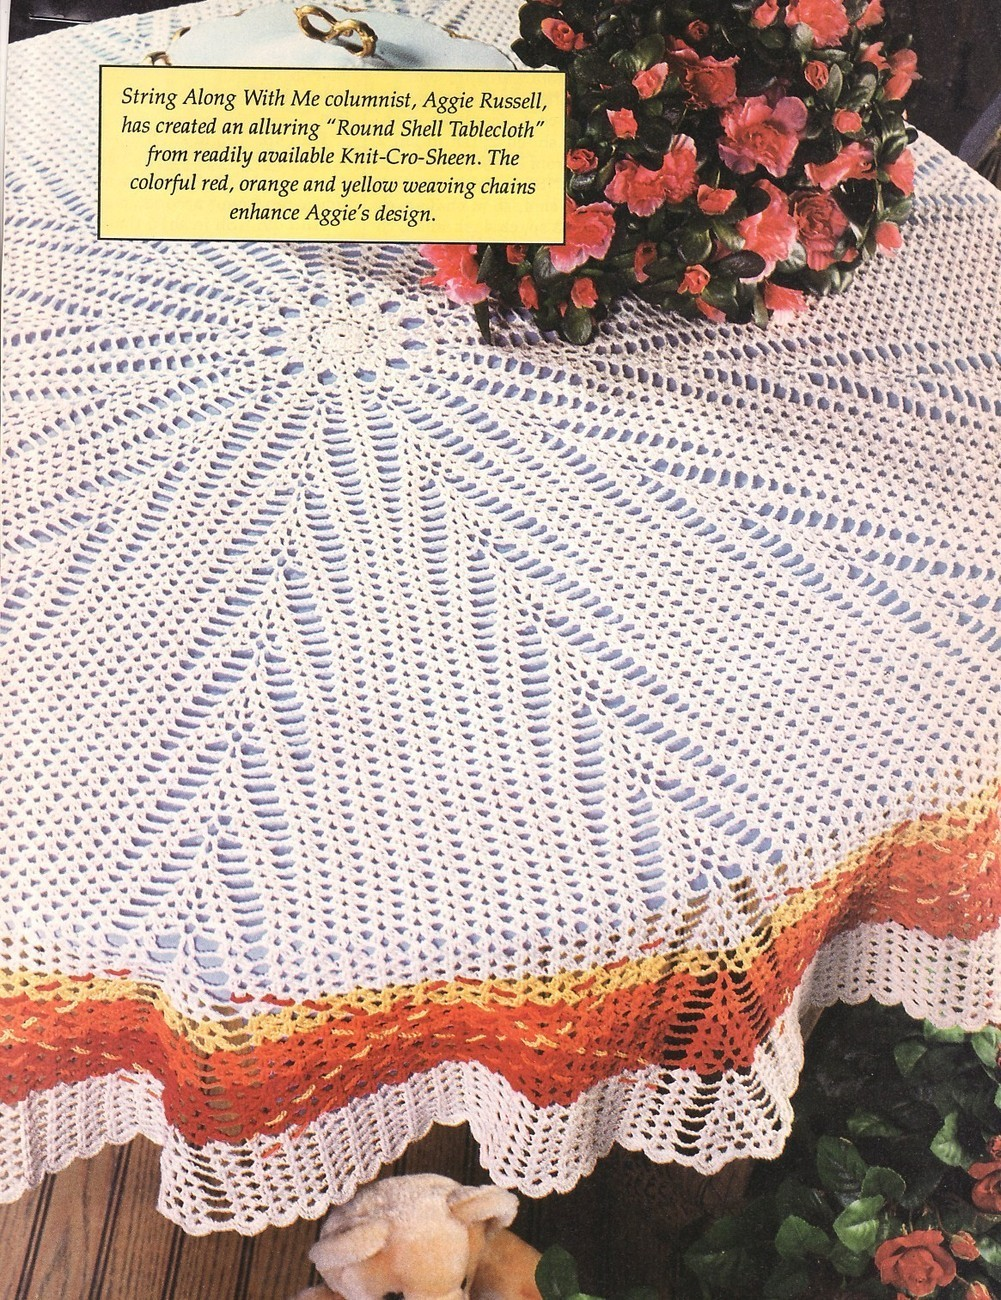 I'm looking for a free round crochet tablecloth or doily pattern